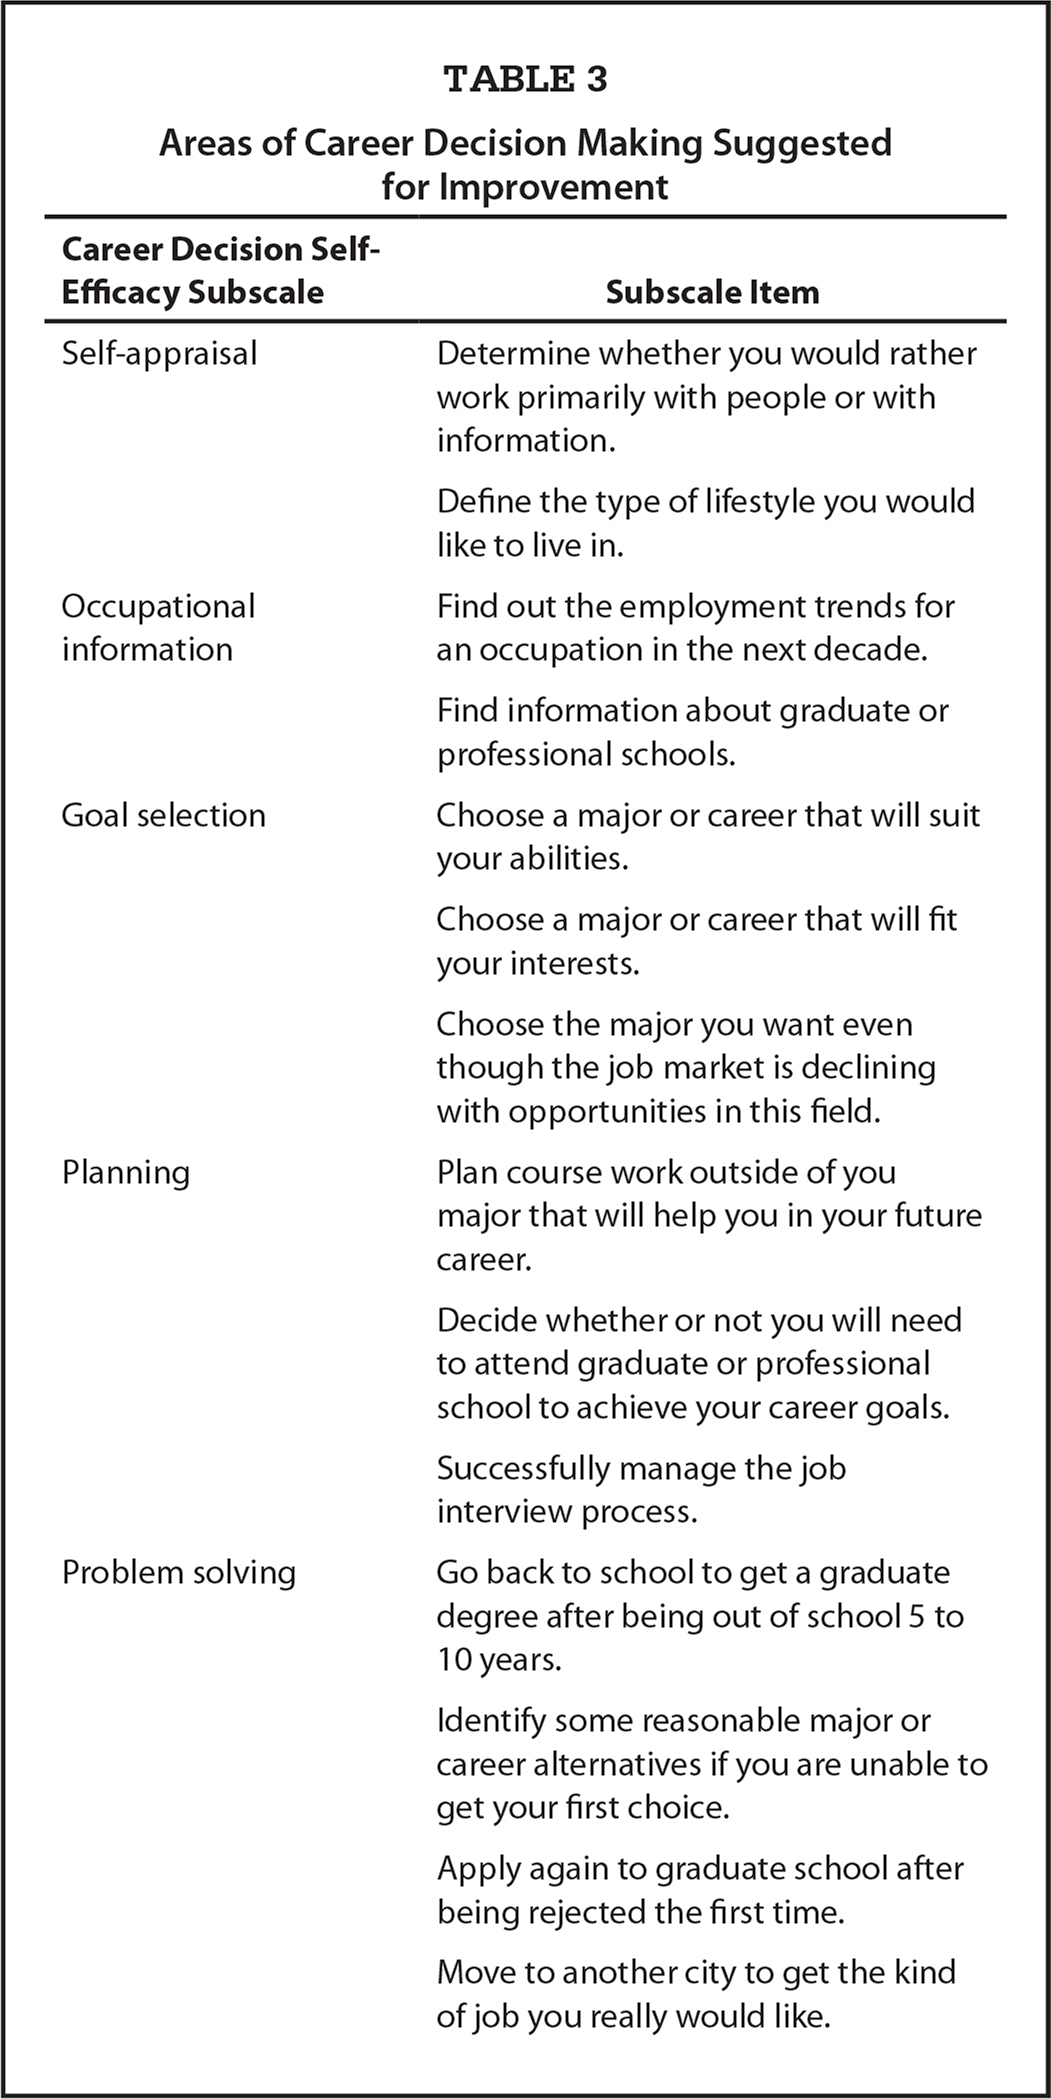 Areas of Career Decision Making Suggested for Improvement